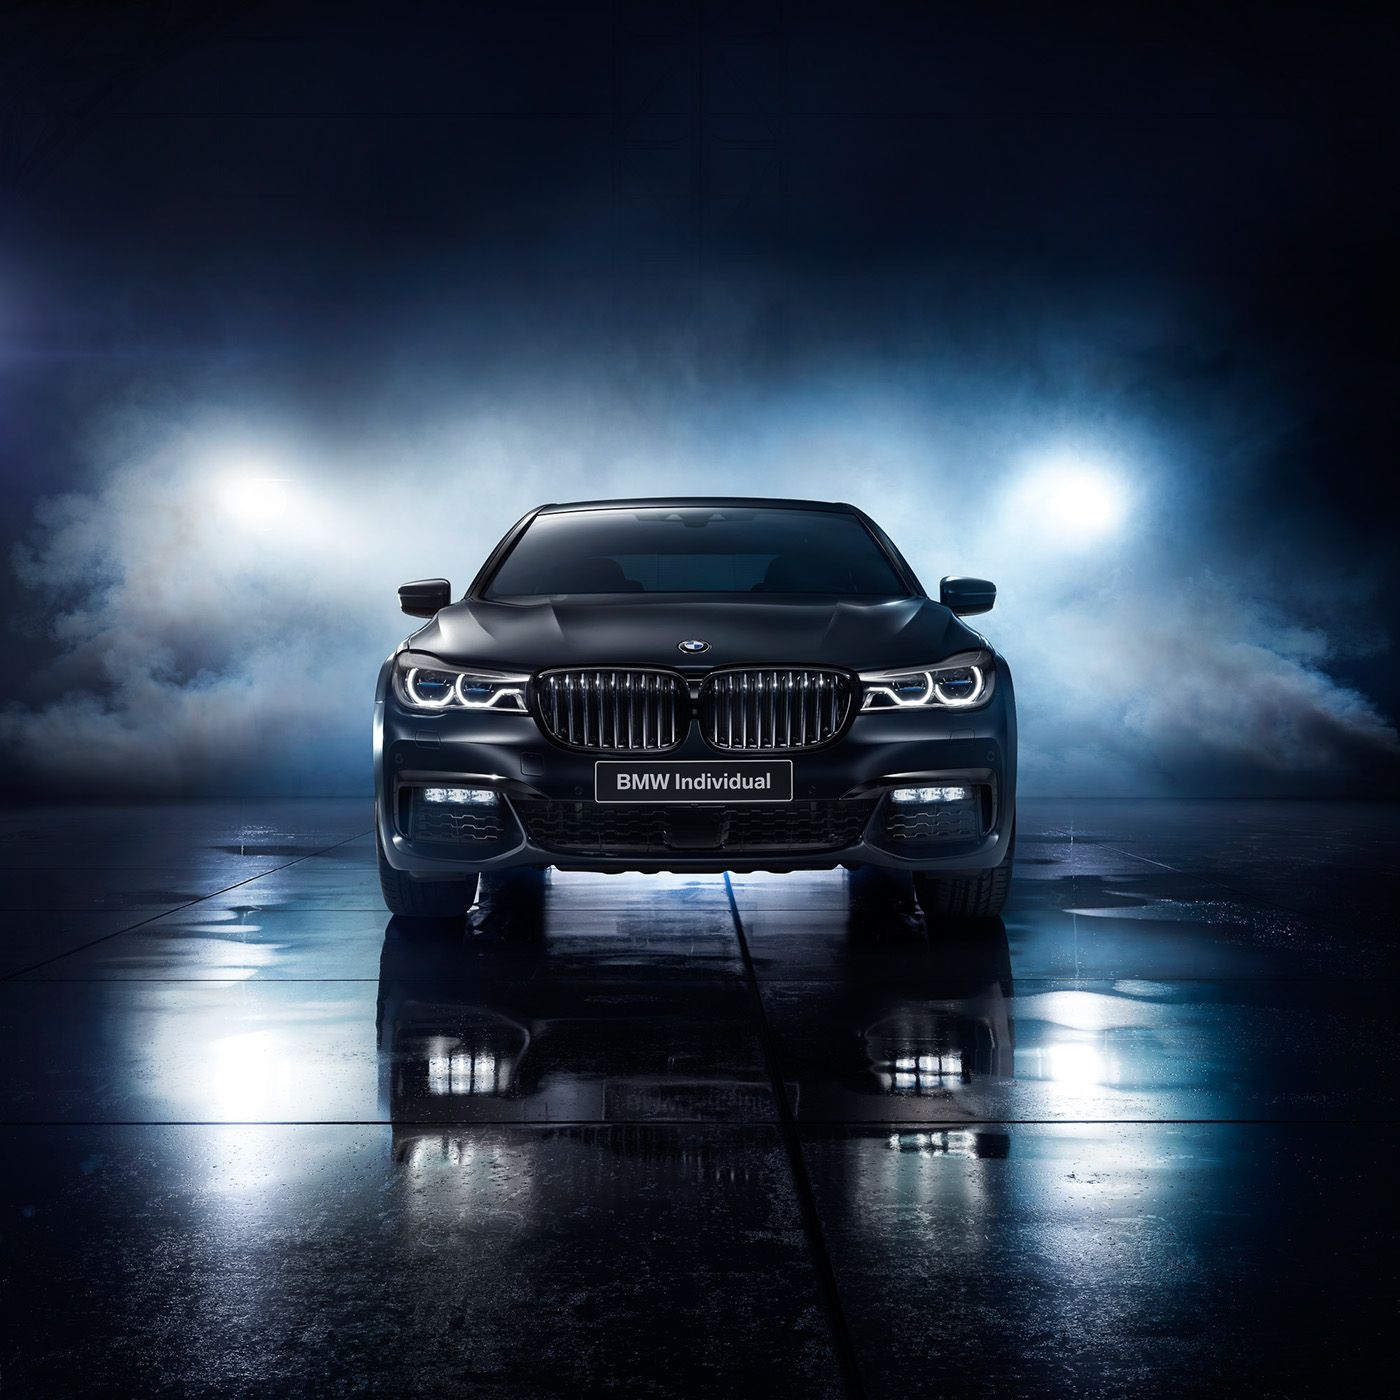 Bmw 7 Series Individual Edition Black Ice Shot For Bmw Russia